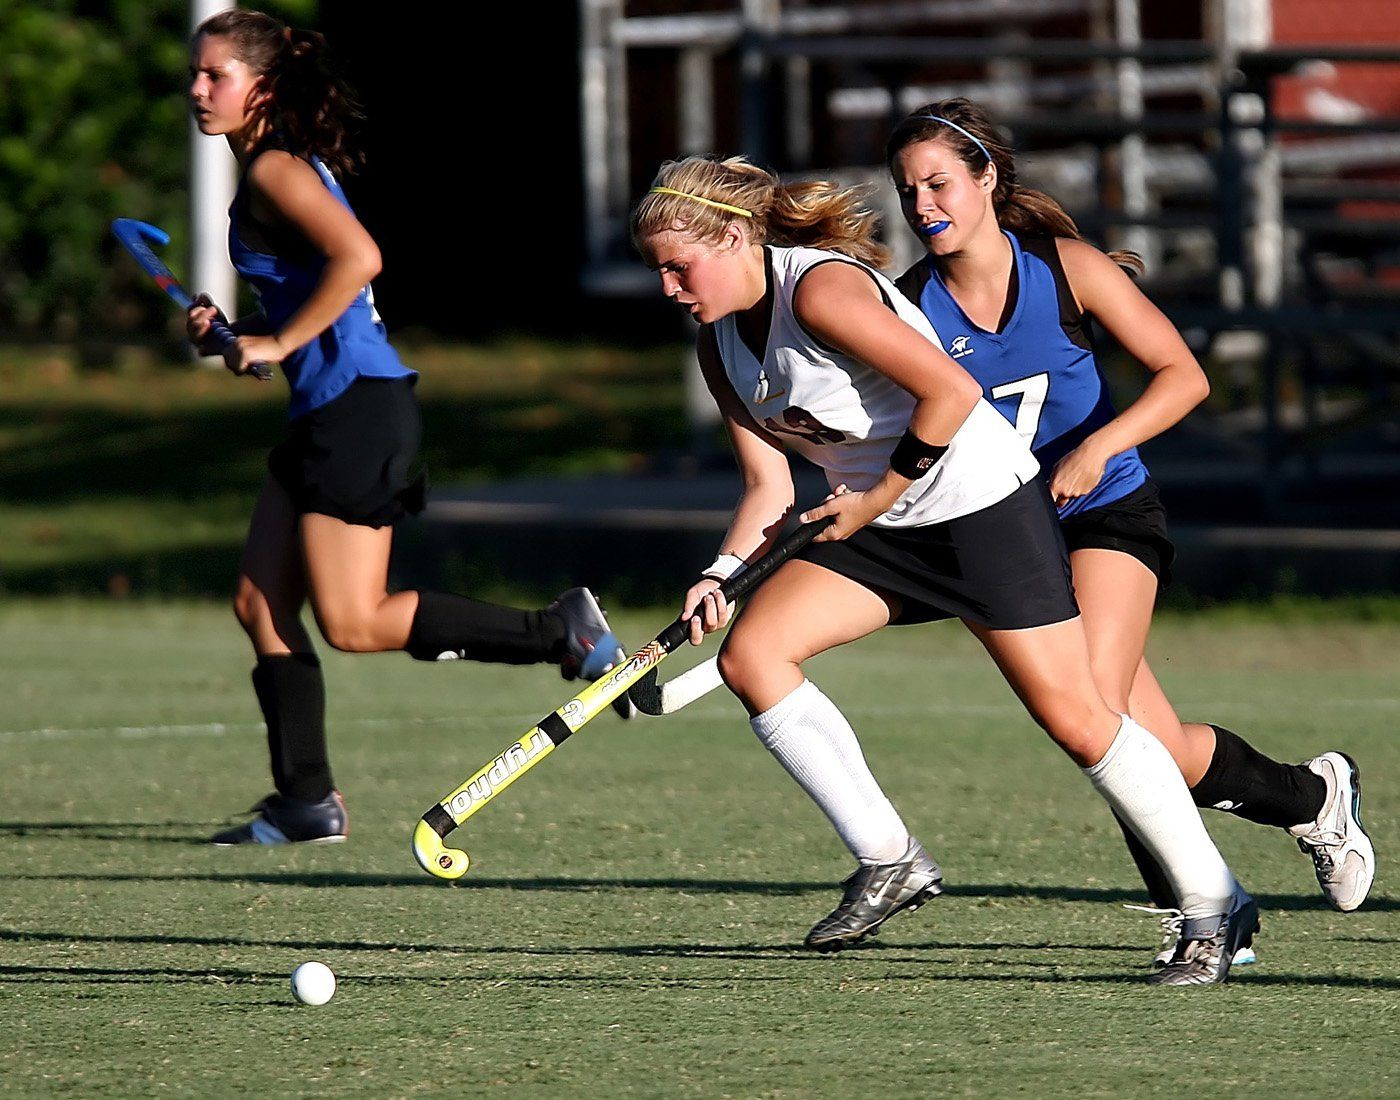 Hockey Comes First Everything Else Second Field Hockey Quotes Field Hockey Hockey Quotes